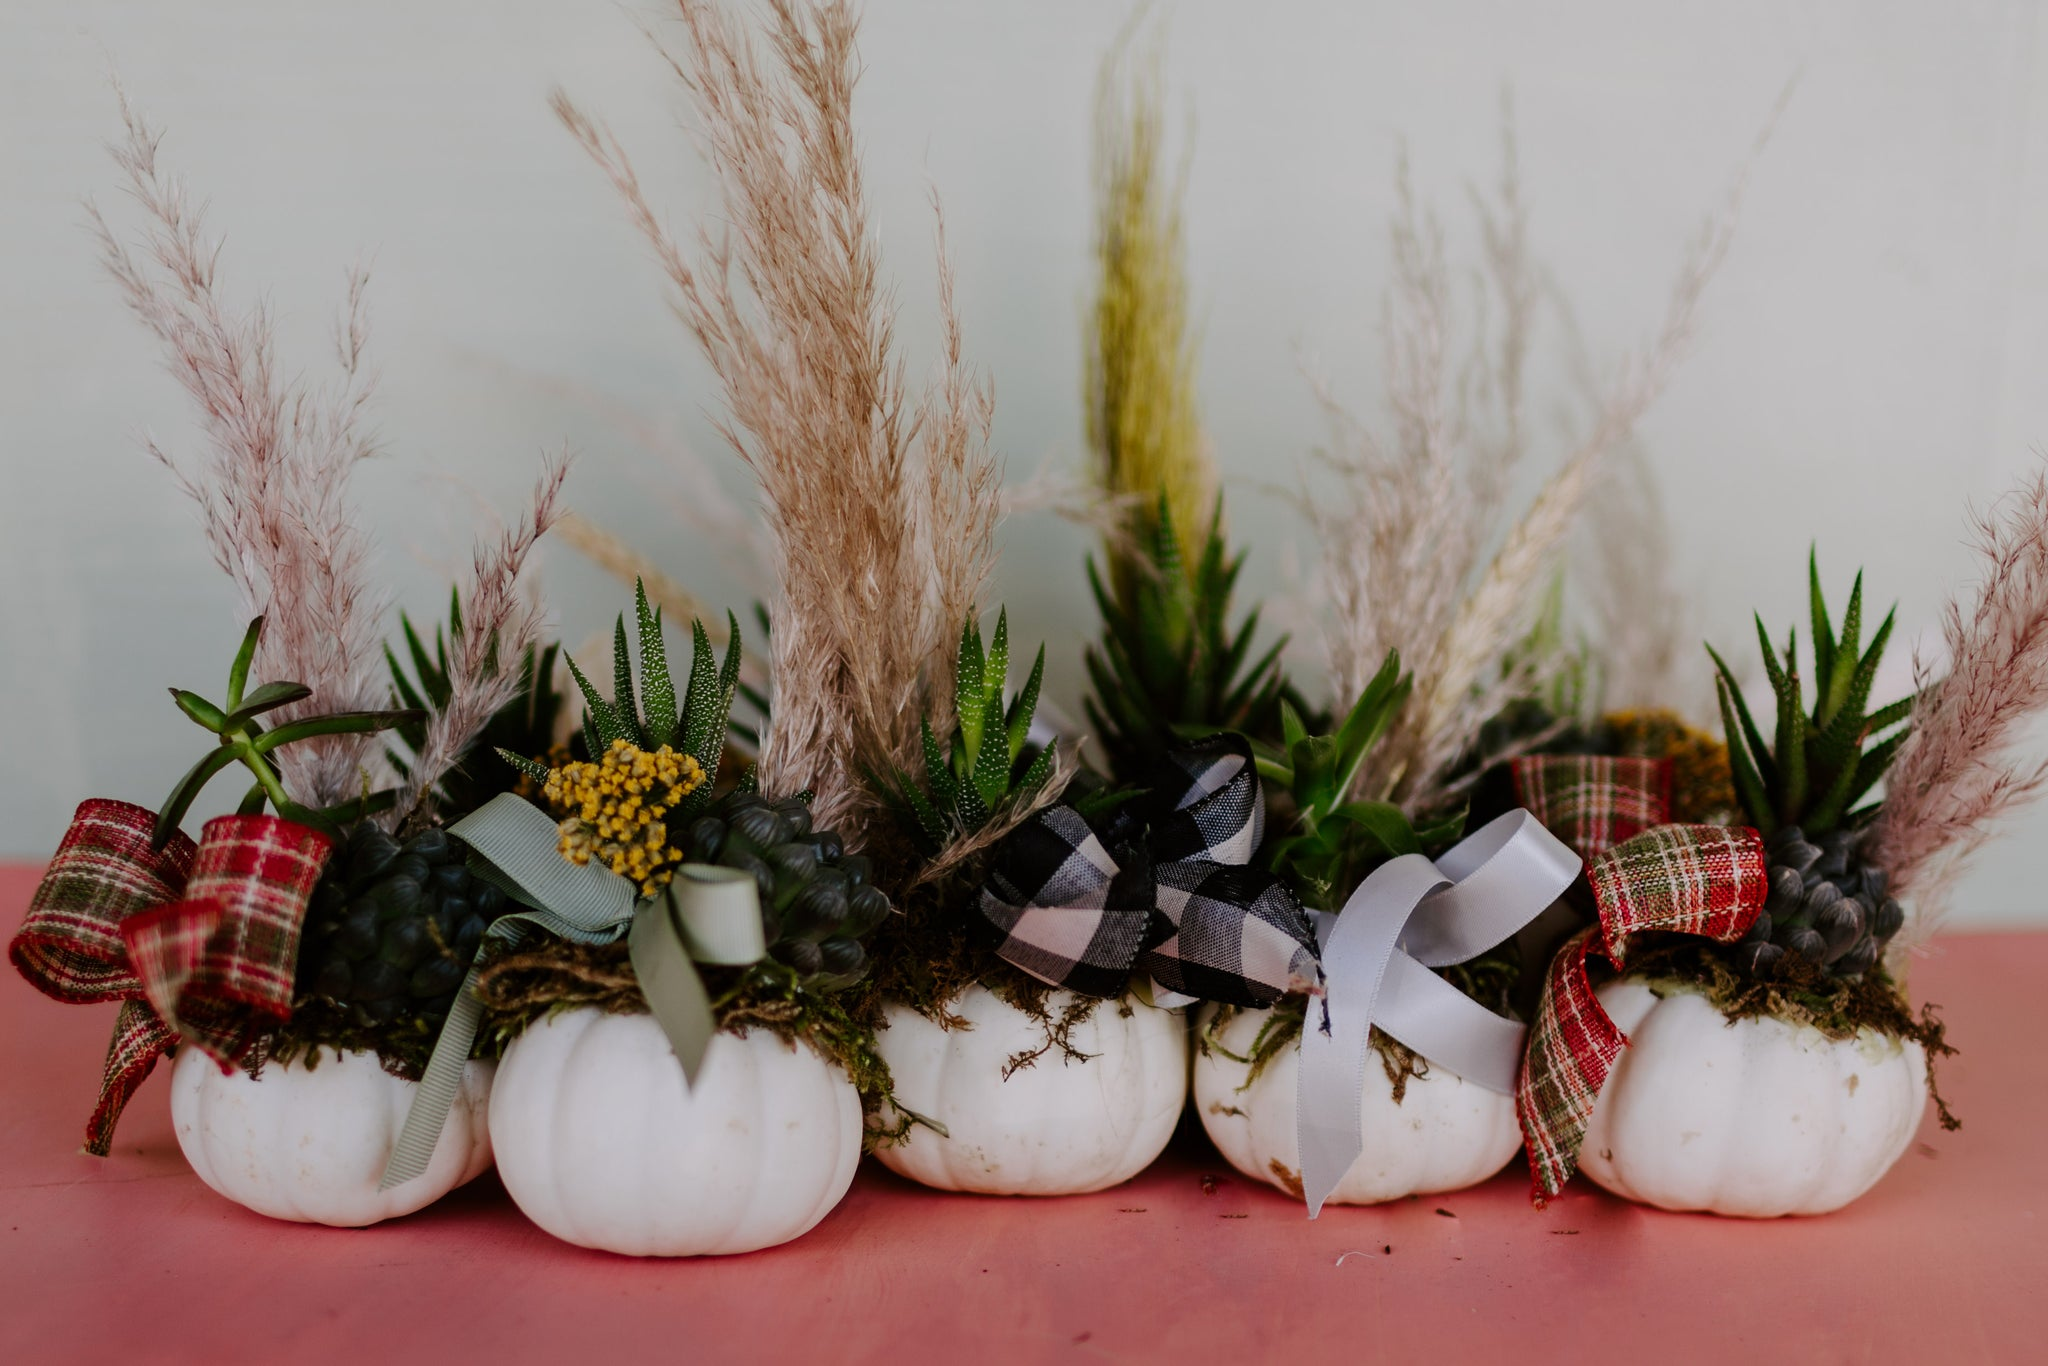 Miniature Pumpkin Arrangements